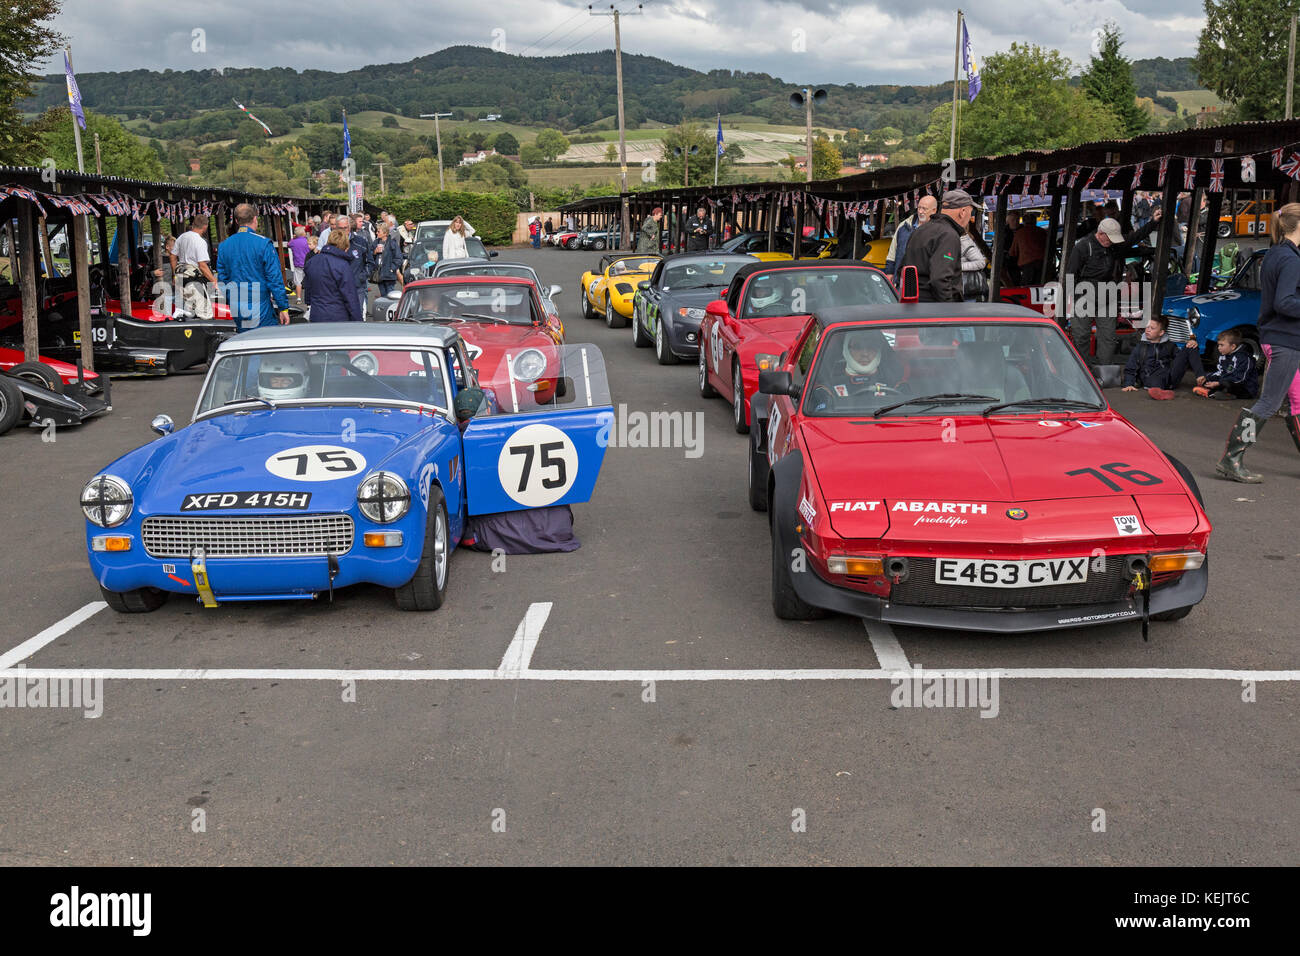 A Midget Car Stock Photos Images Alamy Circuit Map For Bromyard Speed Festival Line Up Of Sports Cars Including Fiat X1 9 And An Mg At